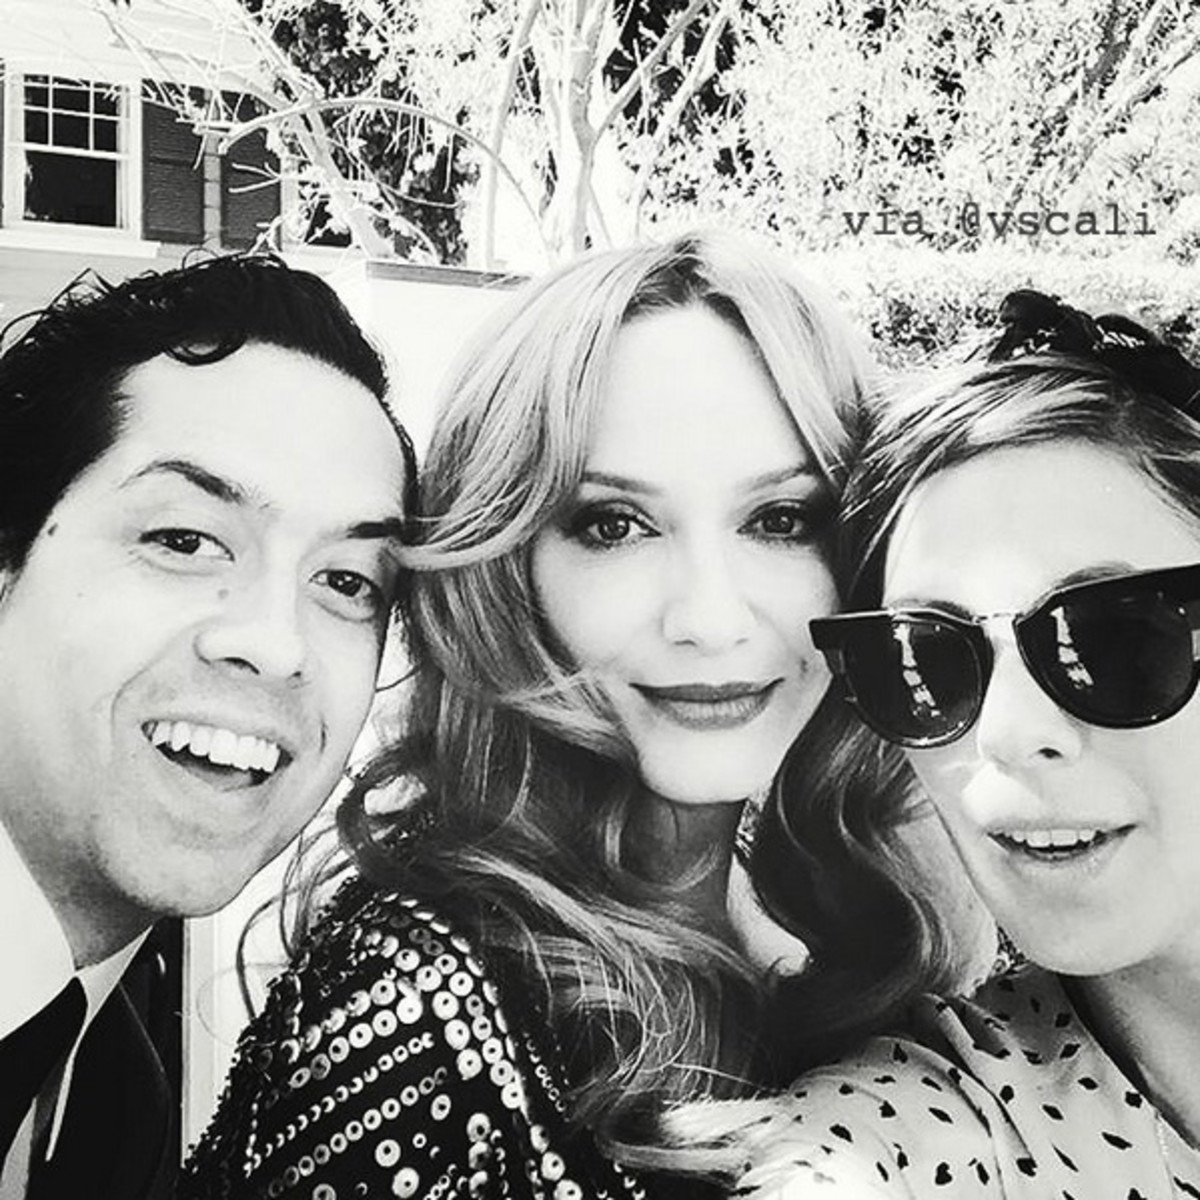 Mad Men star Christina Hendricks with husband Geoffrey Arend and makeup pro Vanessa Scali